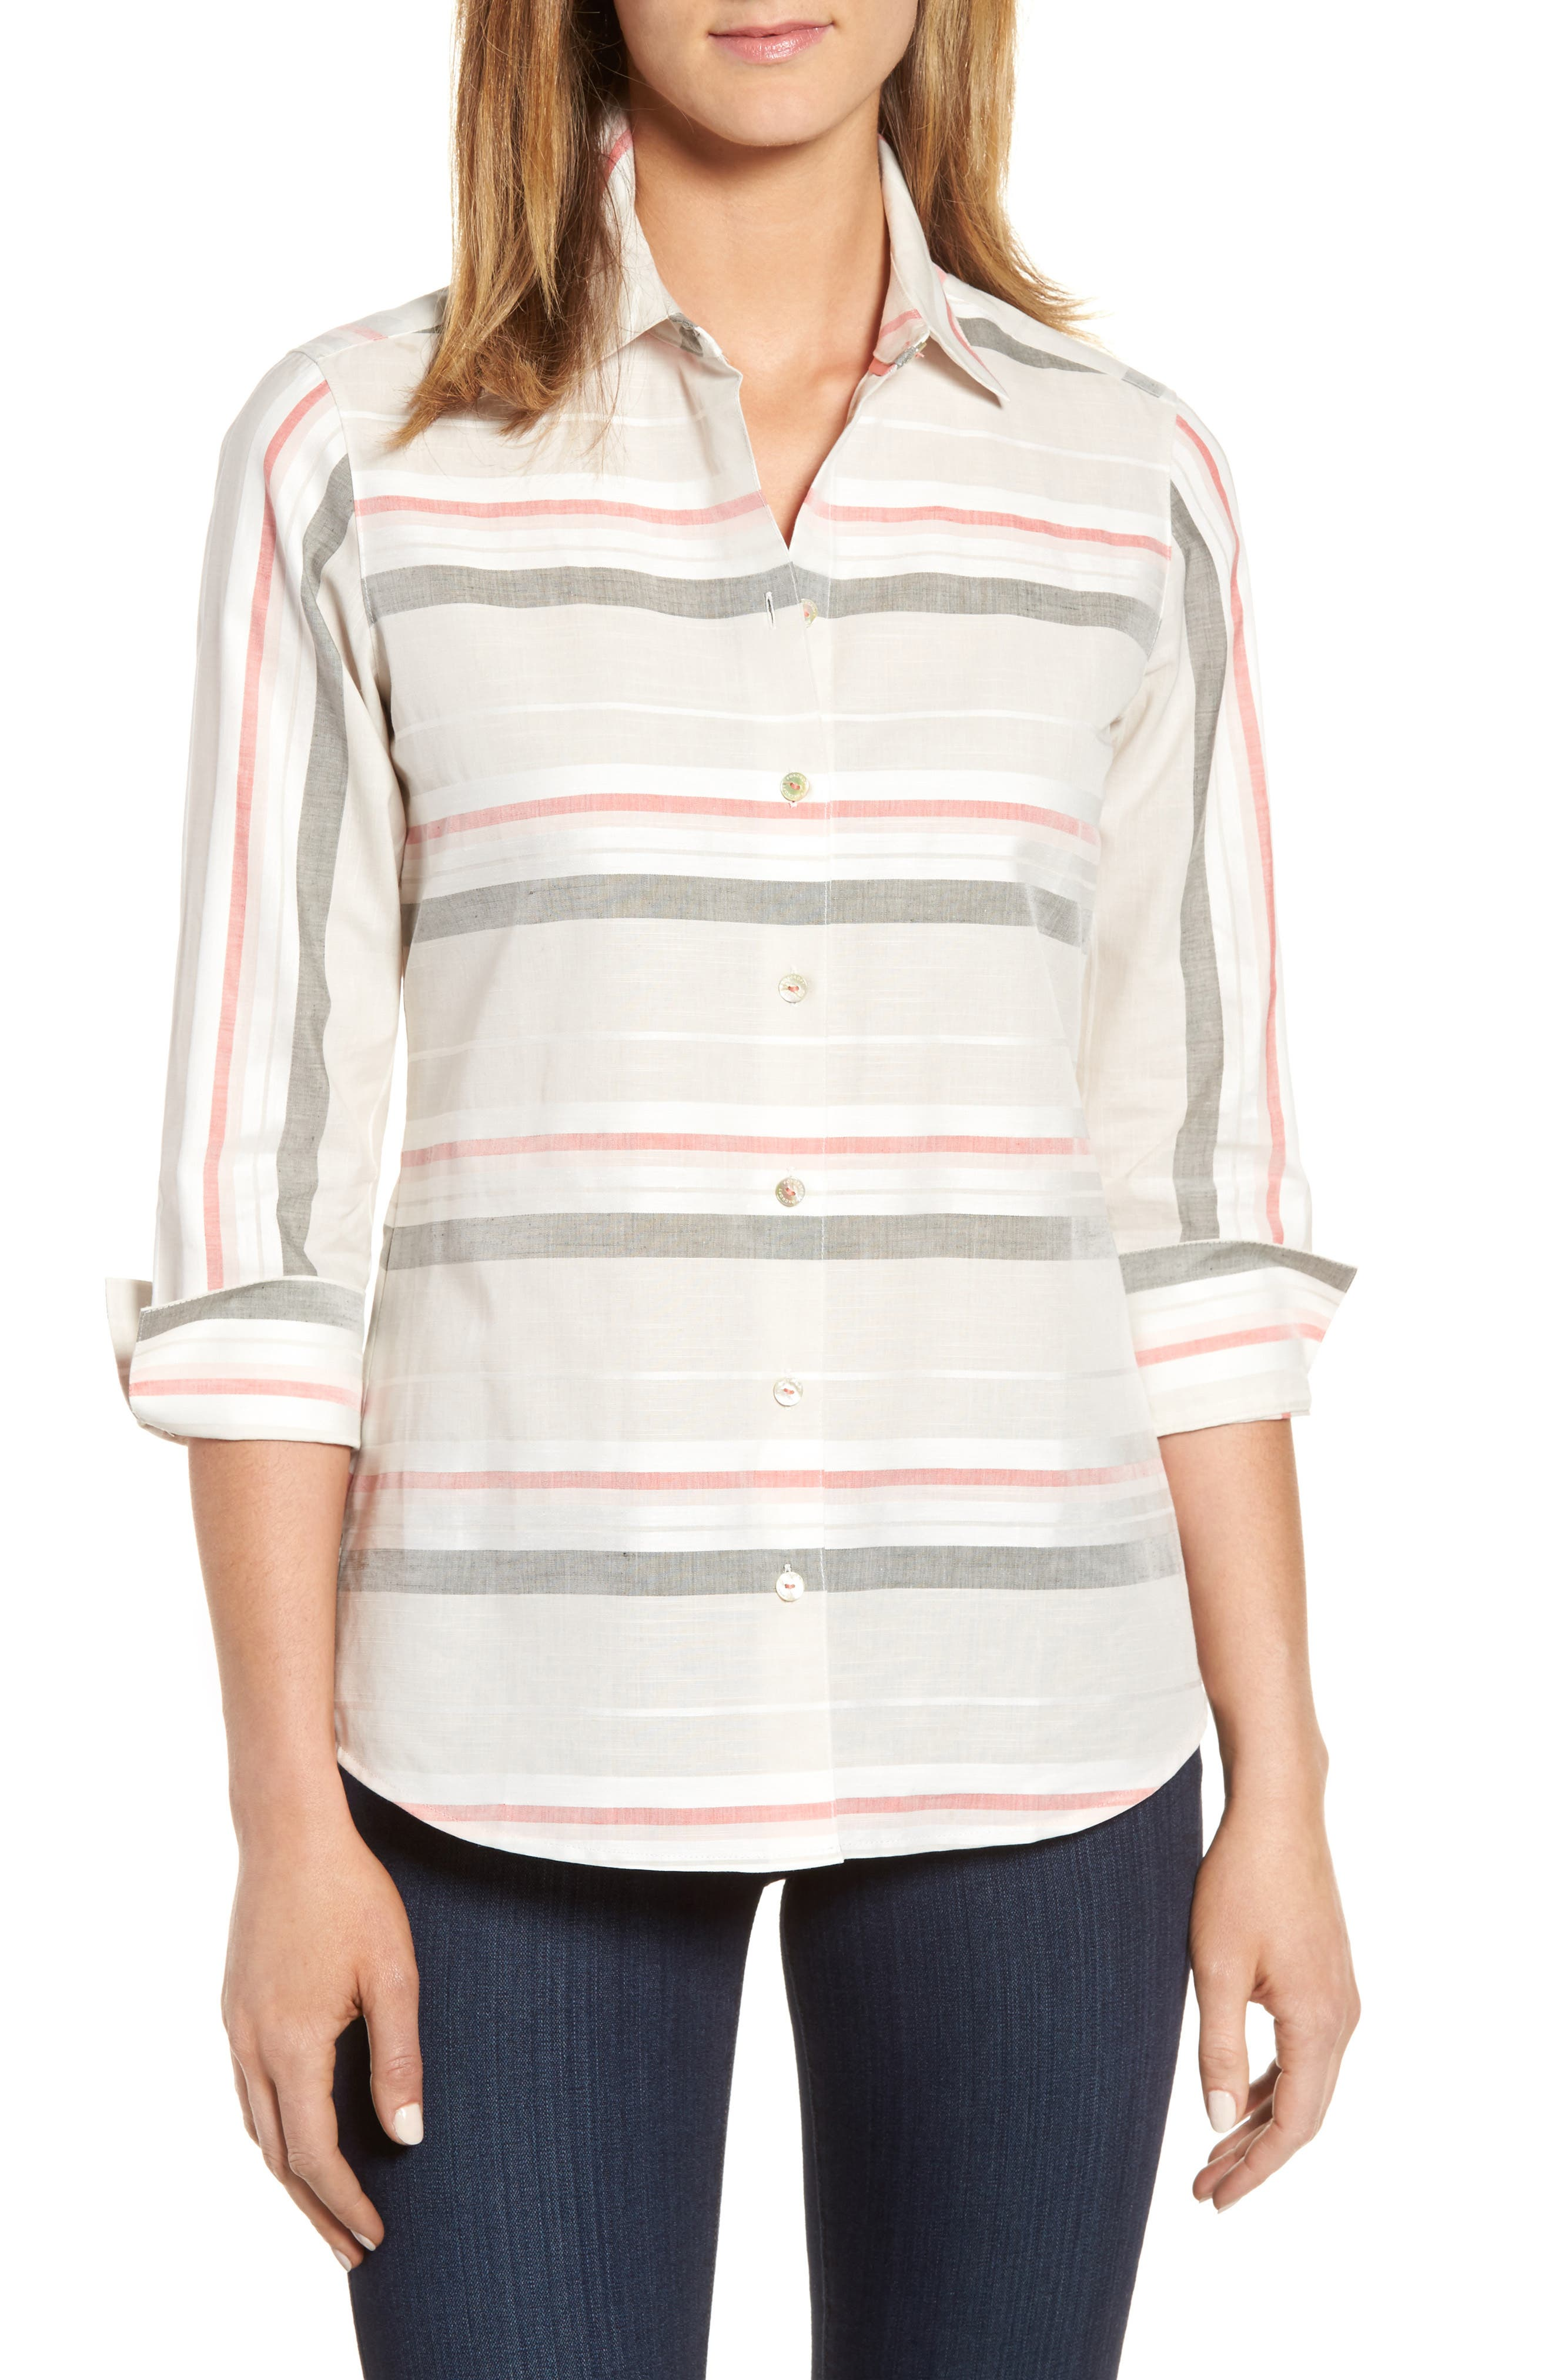 Main Image - Foxcroft Fia Stripe Cotton & Linen Shirt (Regular & Petite)